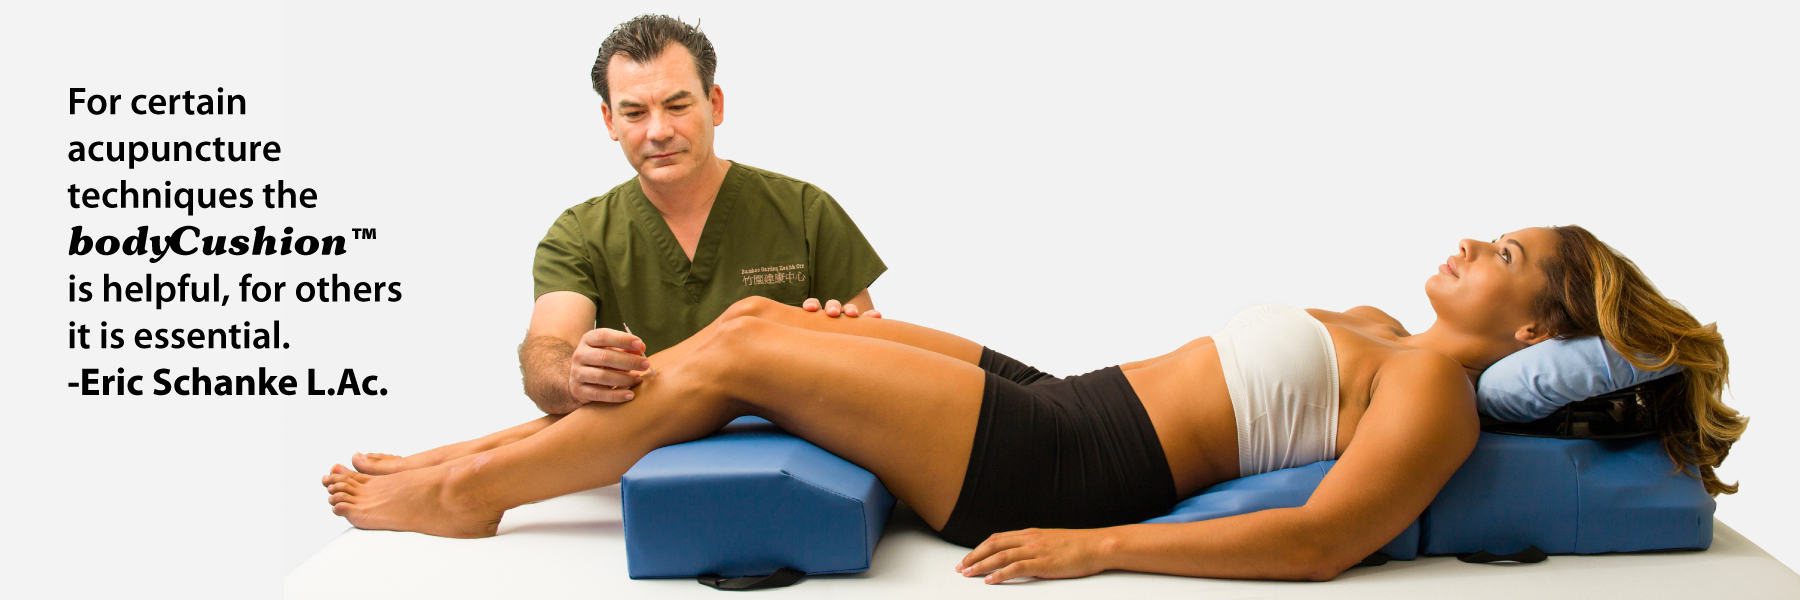 For certain acupuncture techniques the bodyCushion is helpful, for others it is essential. -Eric Schanke L.Ac.